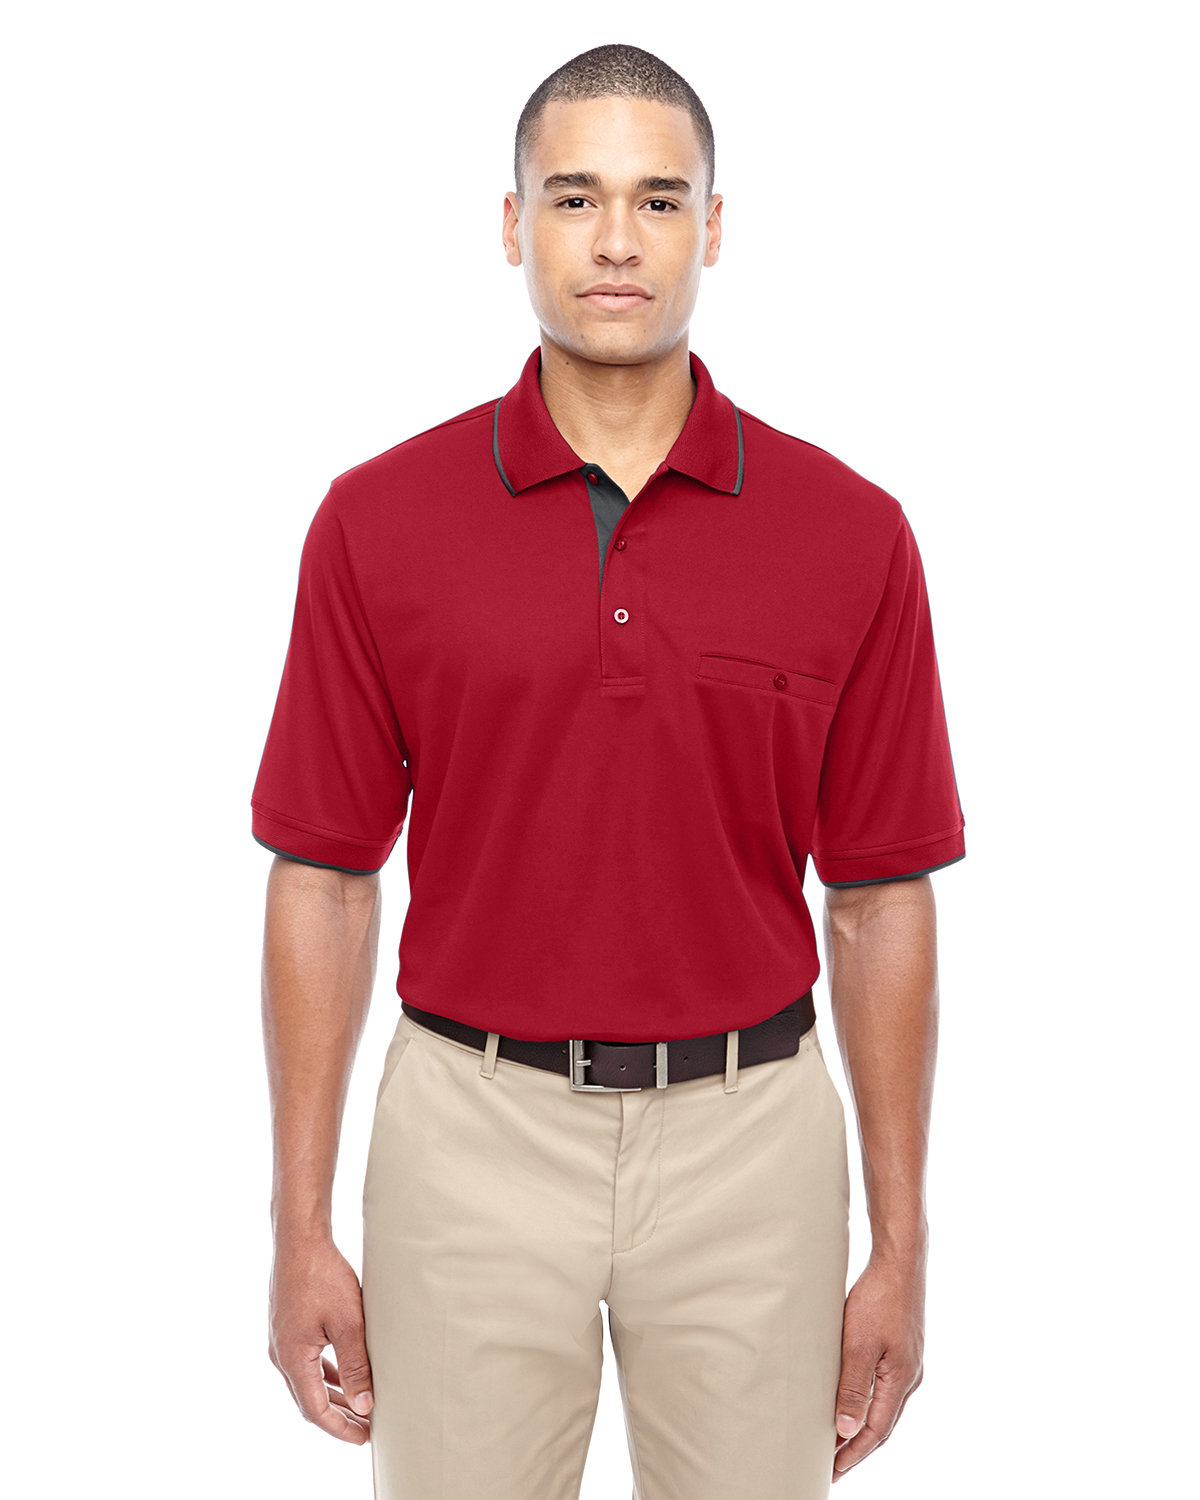 Core 365 Men's Motive Performance Piqué Polo with Tipped Collar CLASSC RED/ CRBN